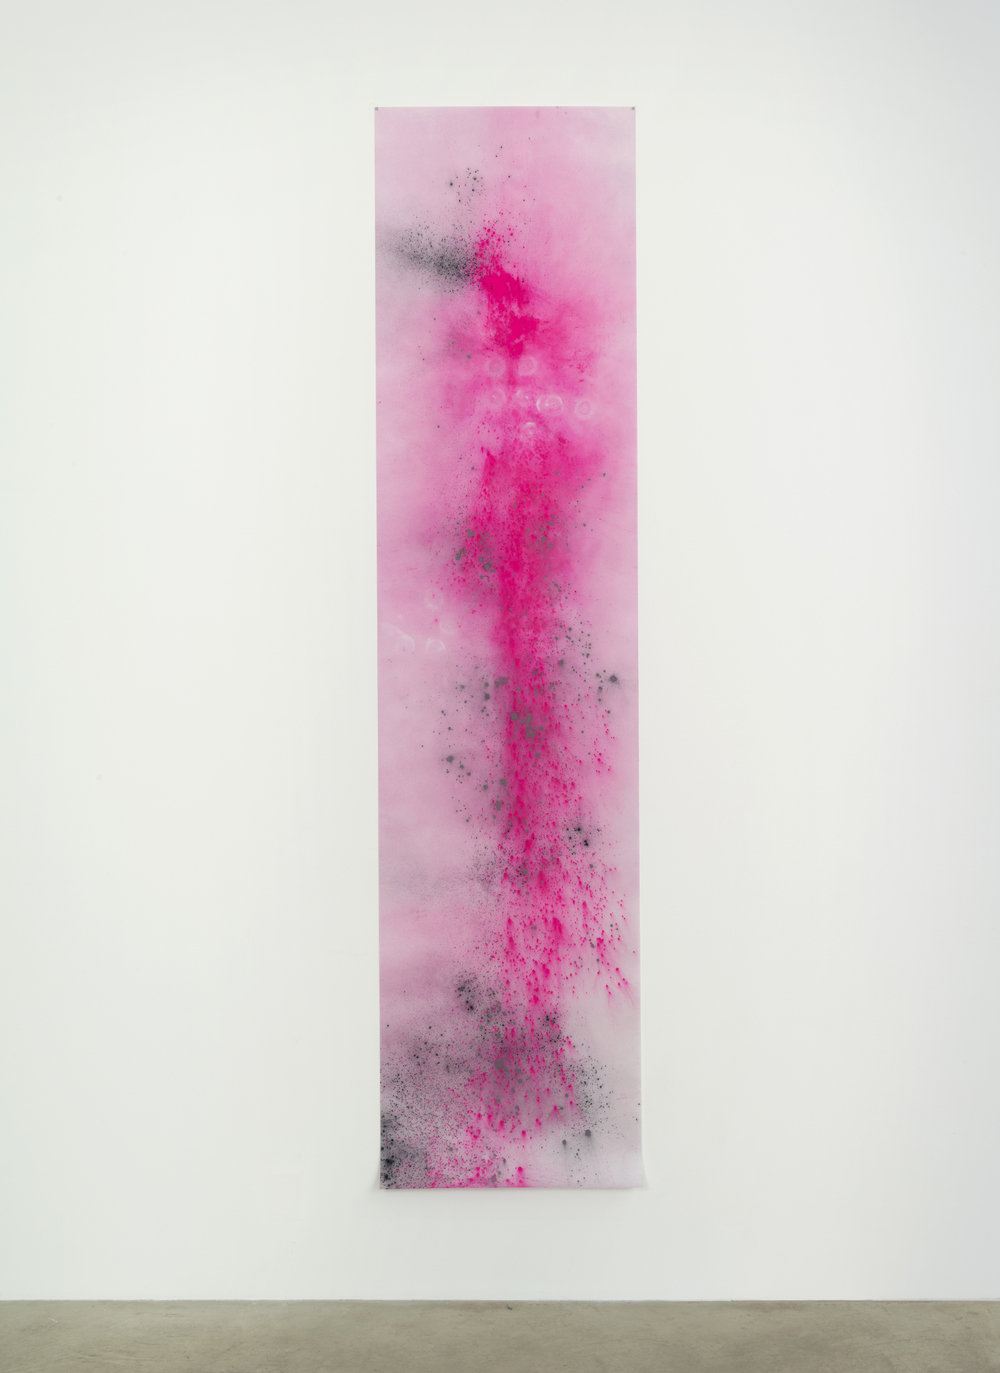 Agra at Dusk, 2014, gun powder, thermochromic pigment and beet-dyed pigment on vellum, 100 x 24 in / 254 x 61 cm